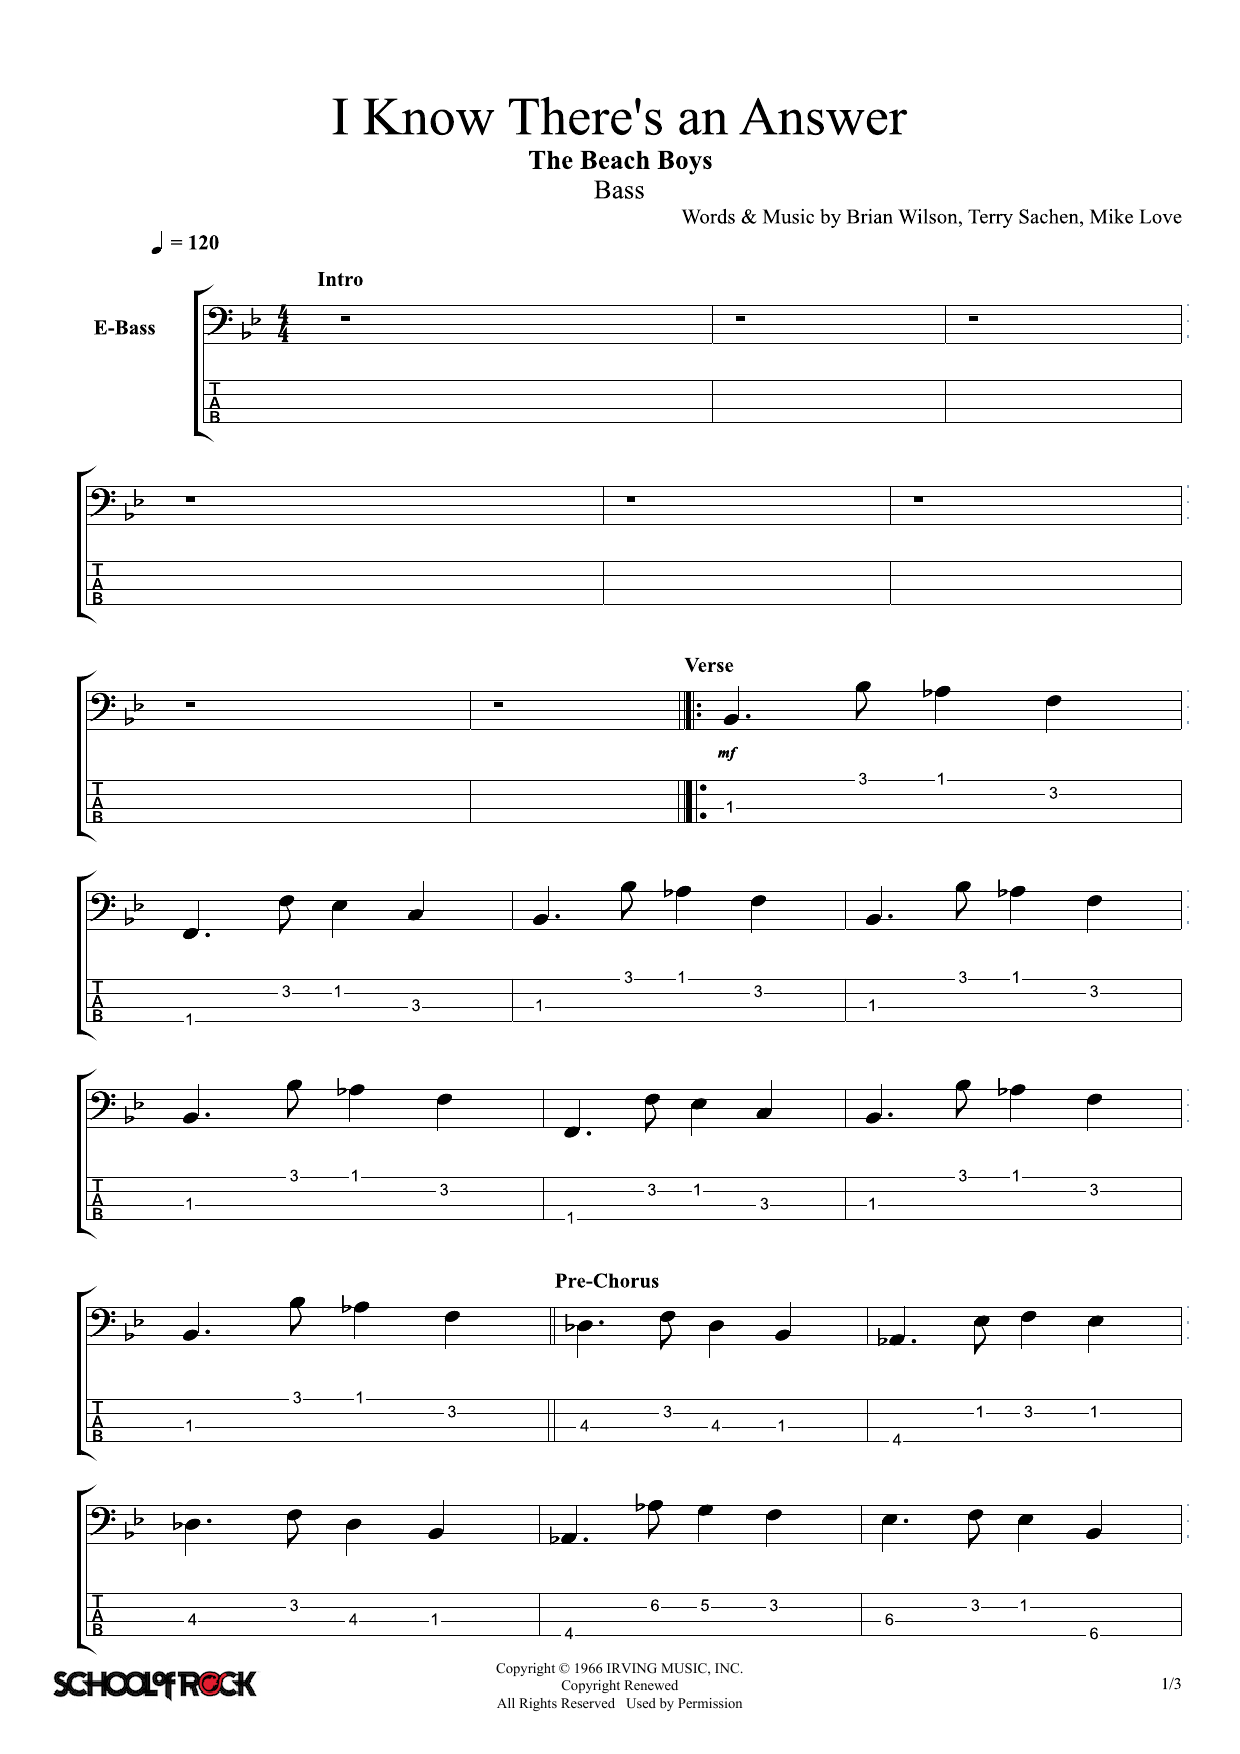 I Know There's An Answer Sheet Music